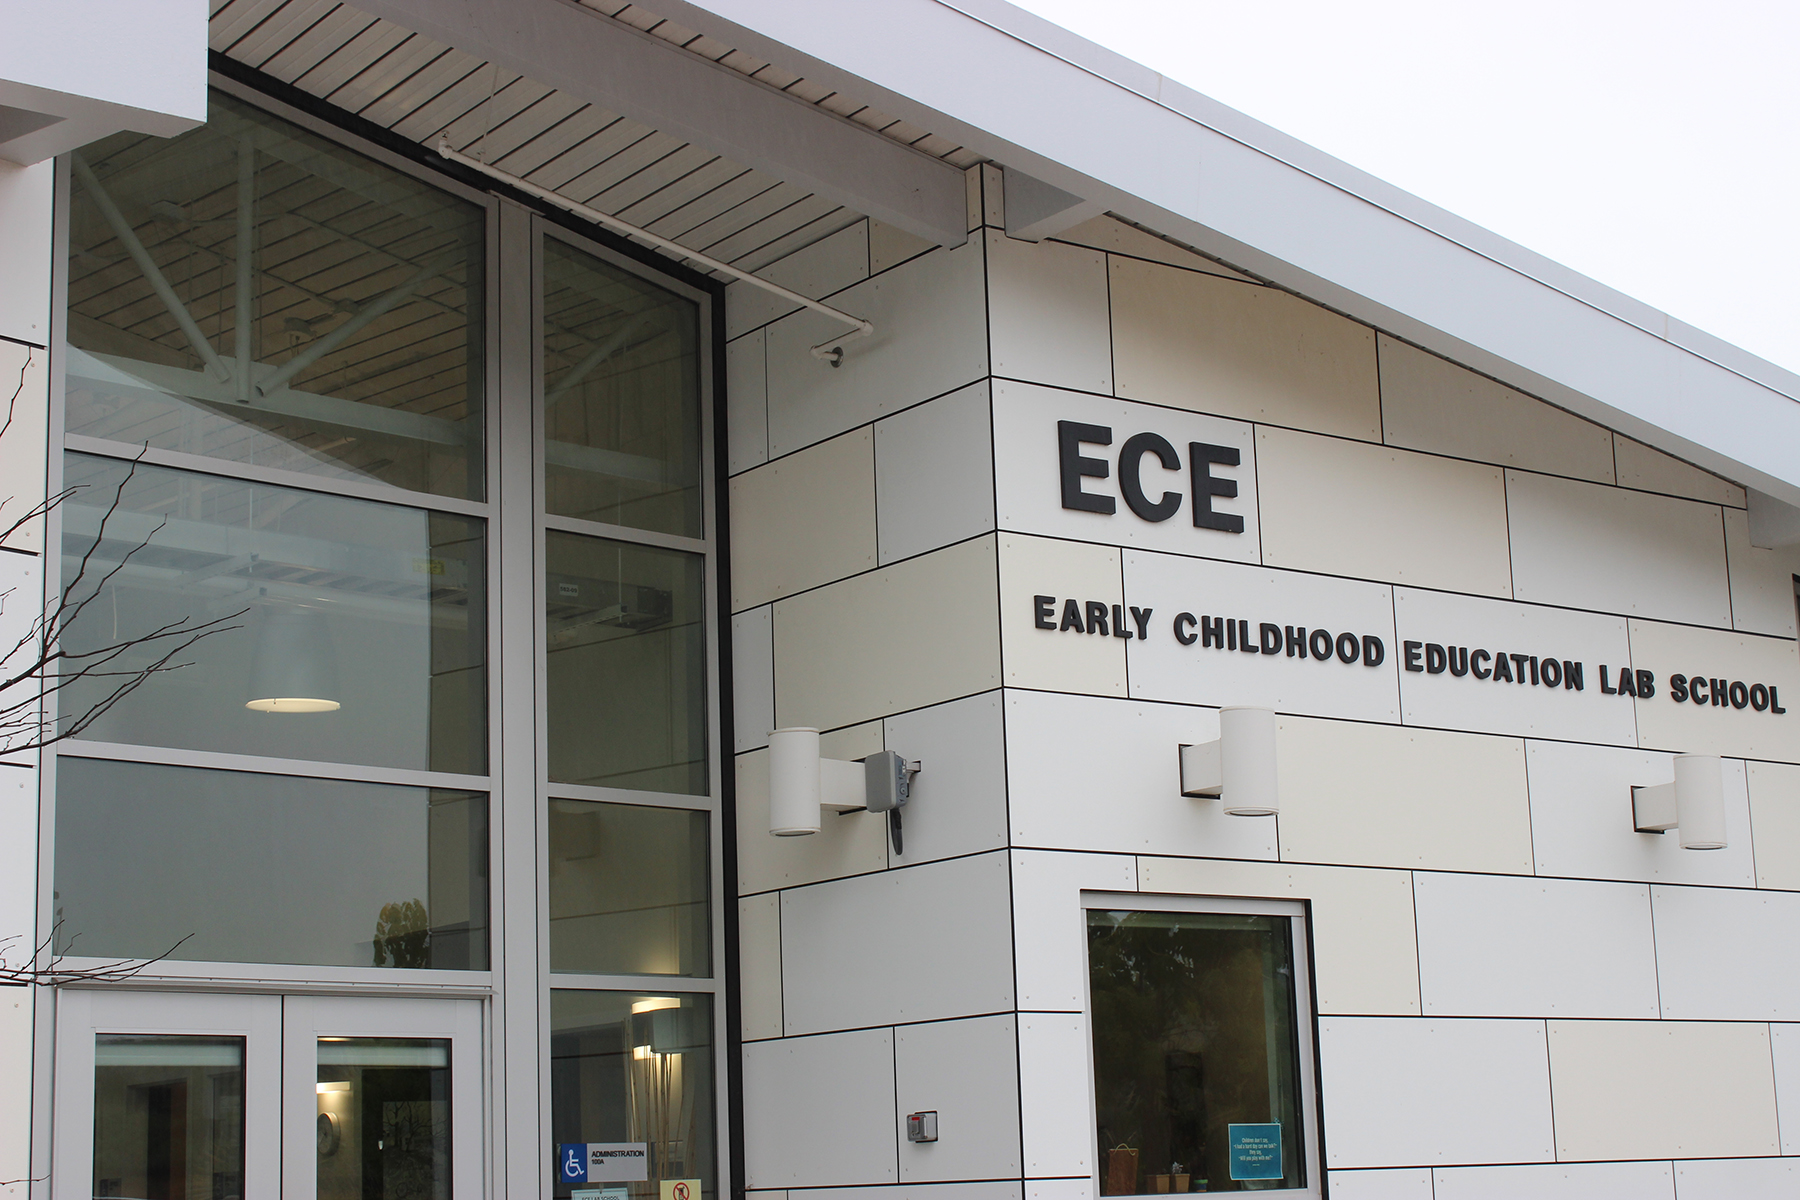 Child education center at palomar